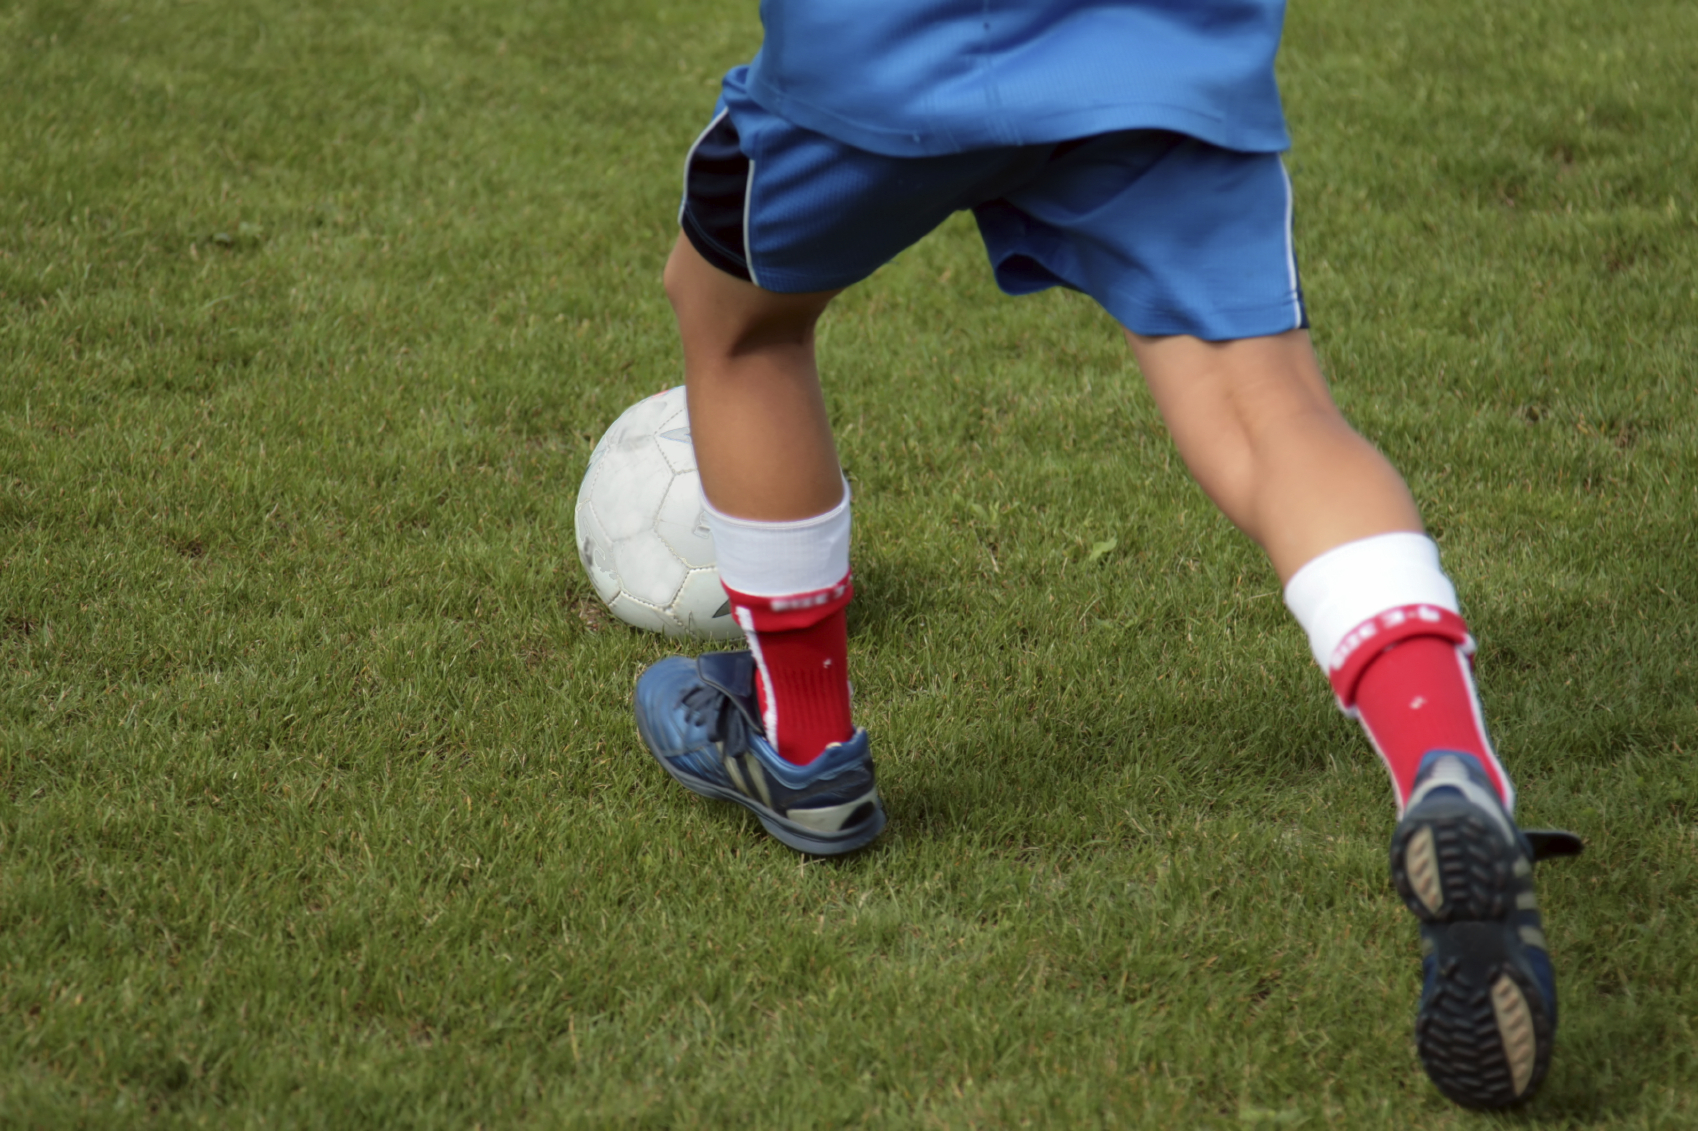 Before warming up, schedule an alignment assessment to prevent injury